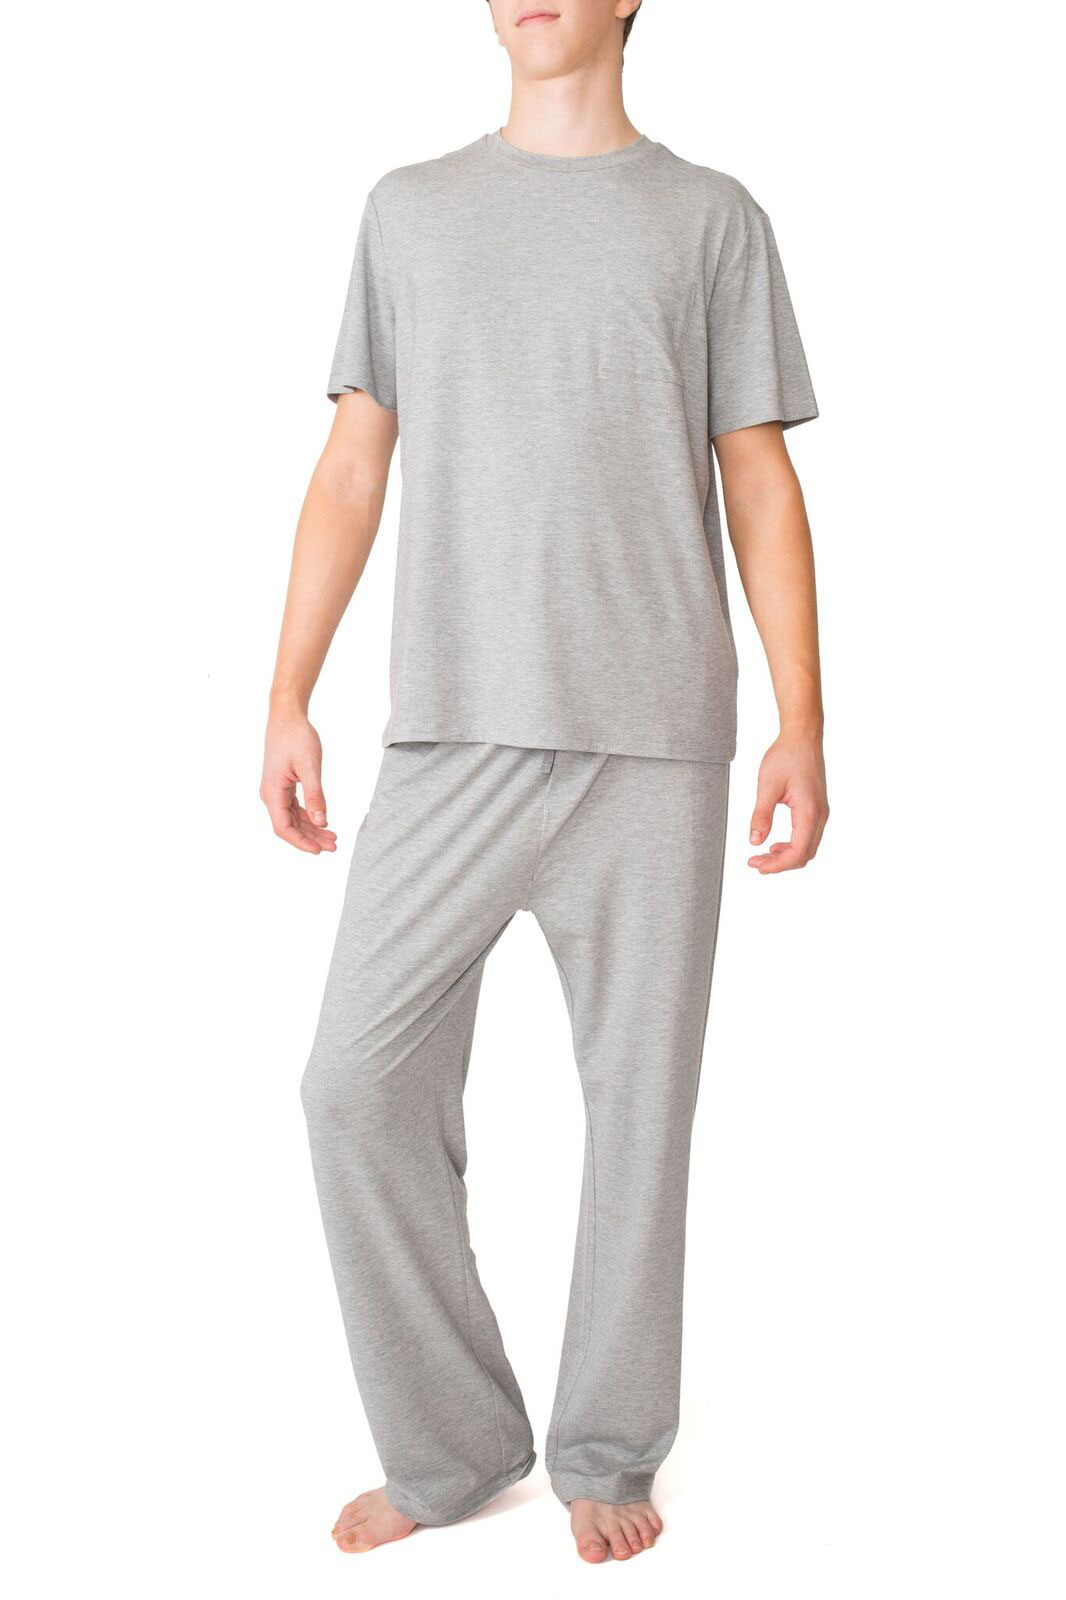 Mens Tshirt and Pant